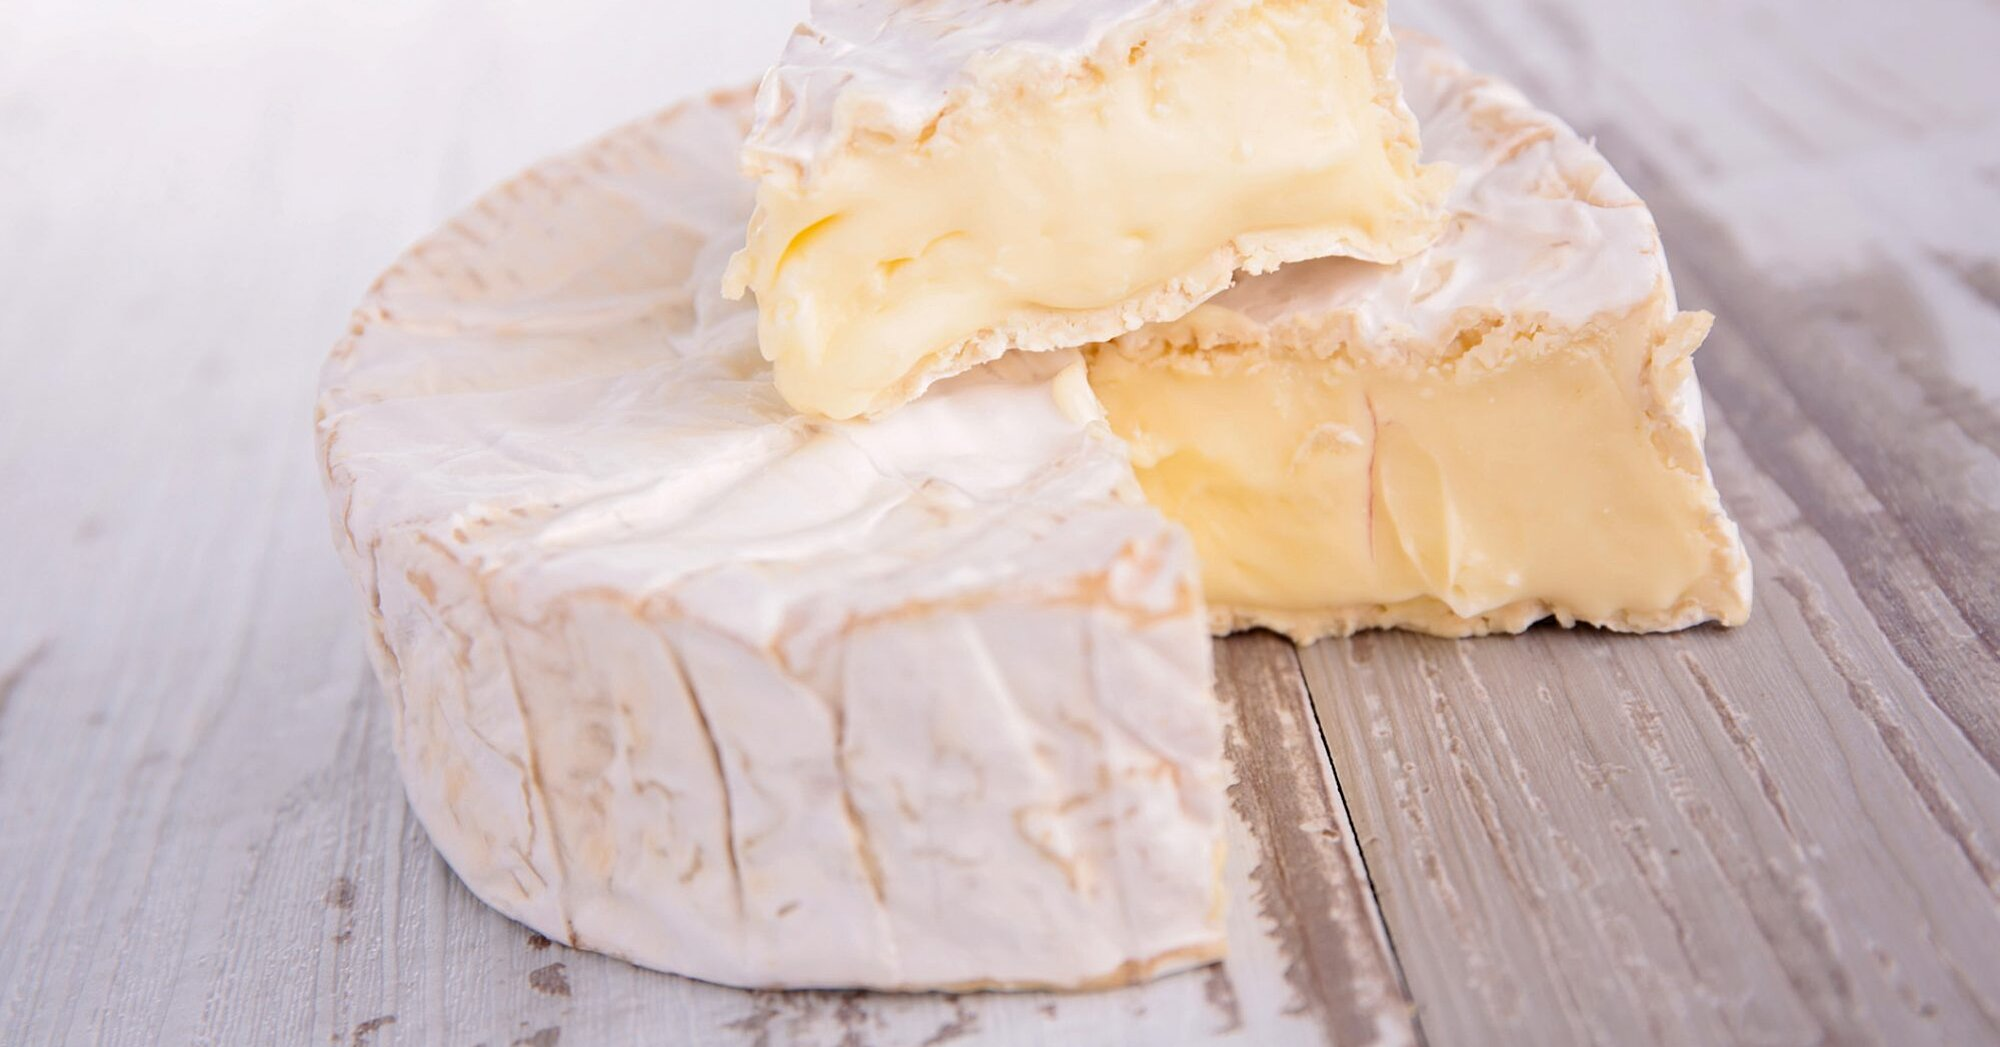 If You Like Brie, You Should Try These Cheeses Next